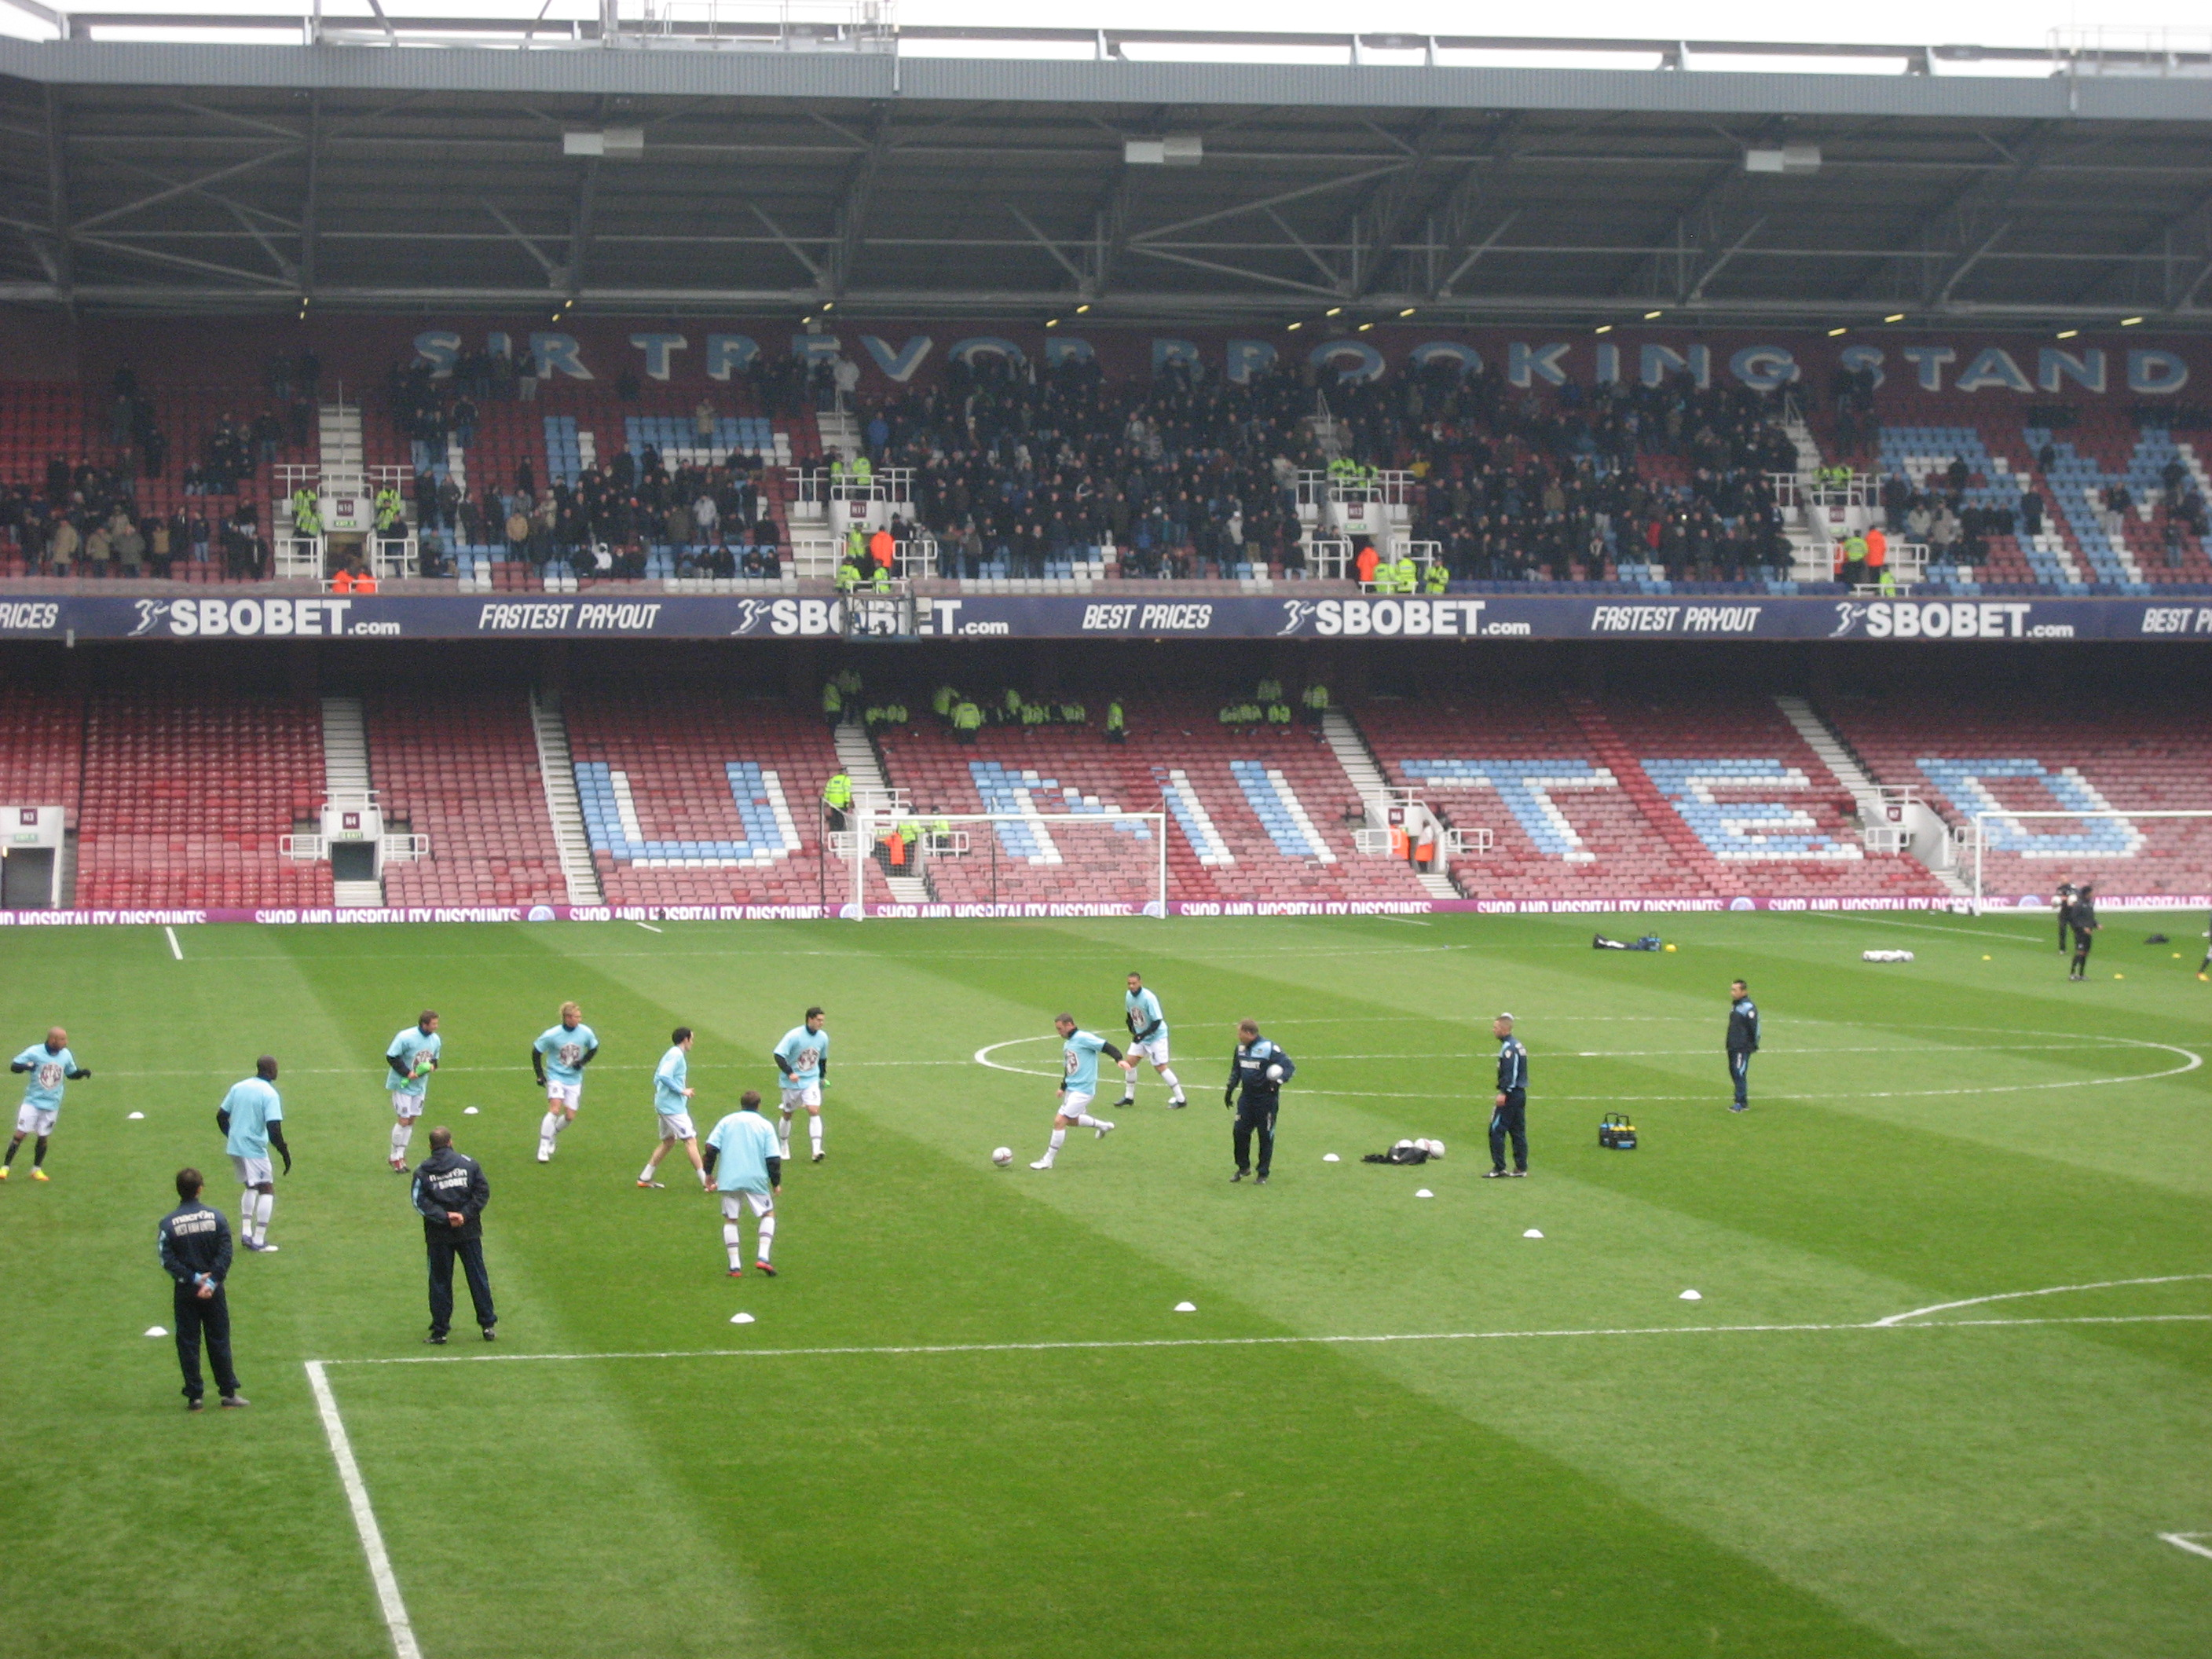 MIllwall warming up in front of their supporters